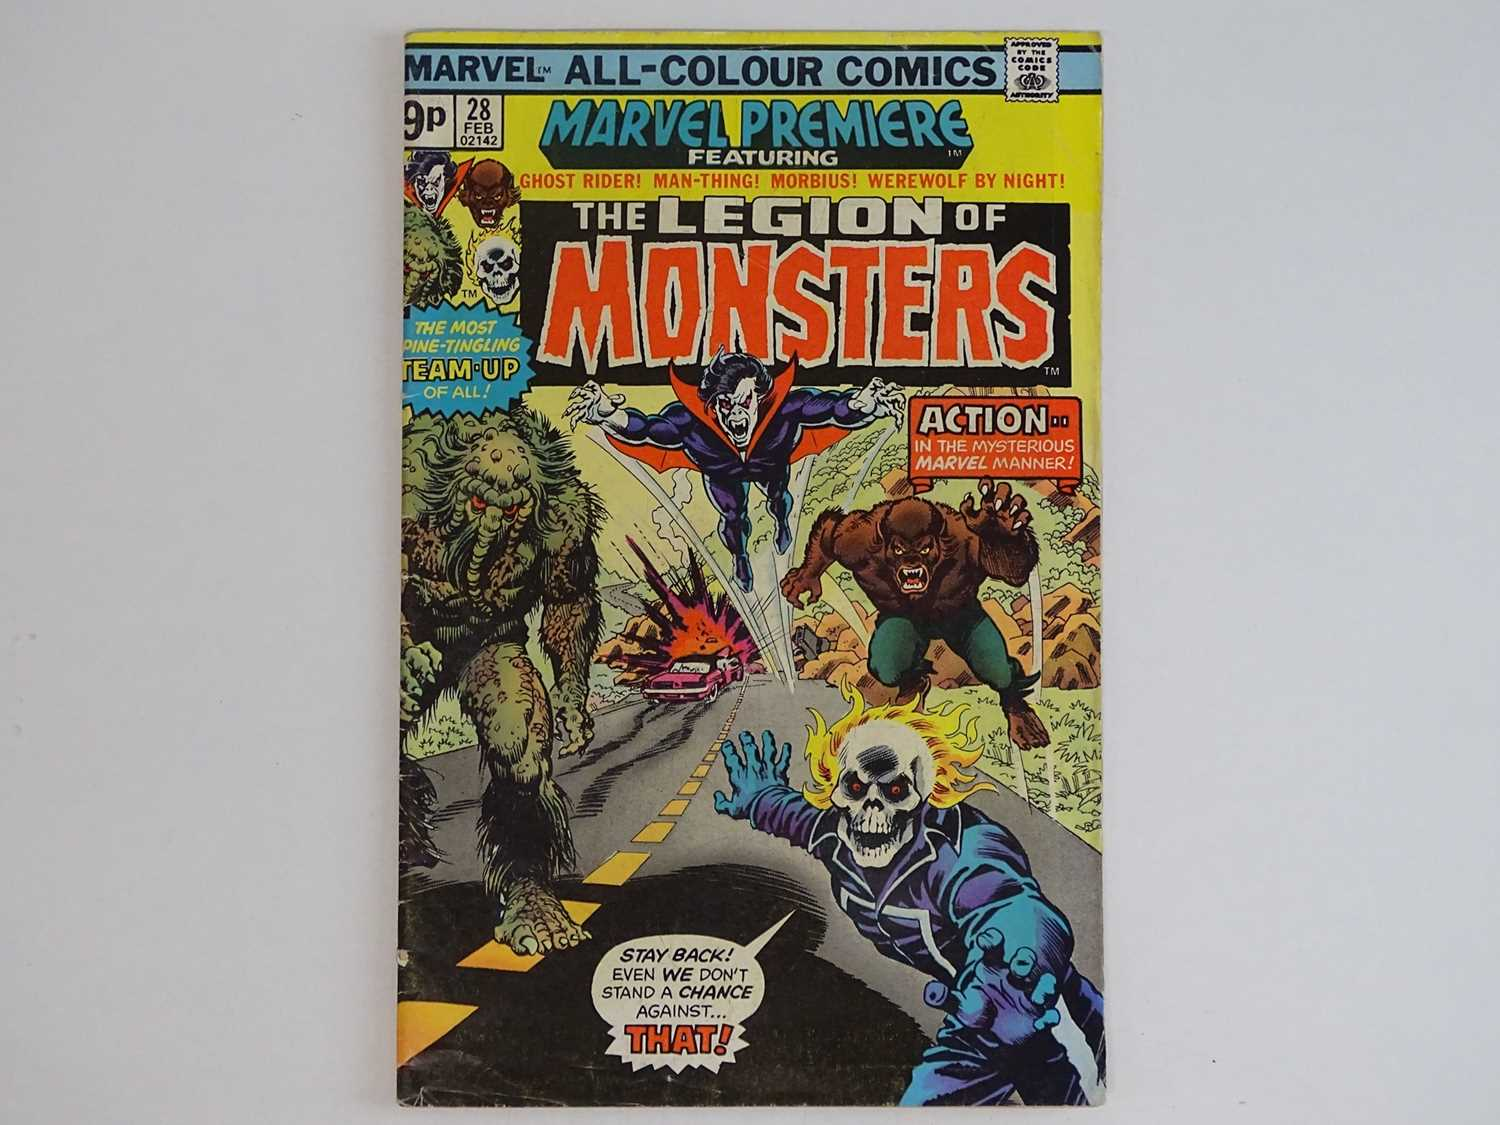 MARVEL PREMIERE #28 - (1976 - MARVEL - UK Price Variant) - Featuring the Legion of Monsters (Ghost